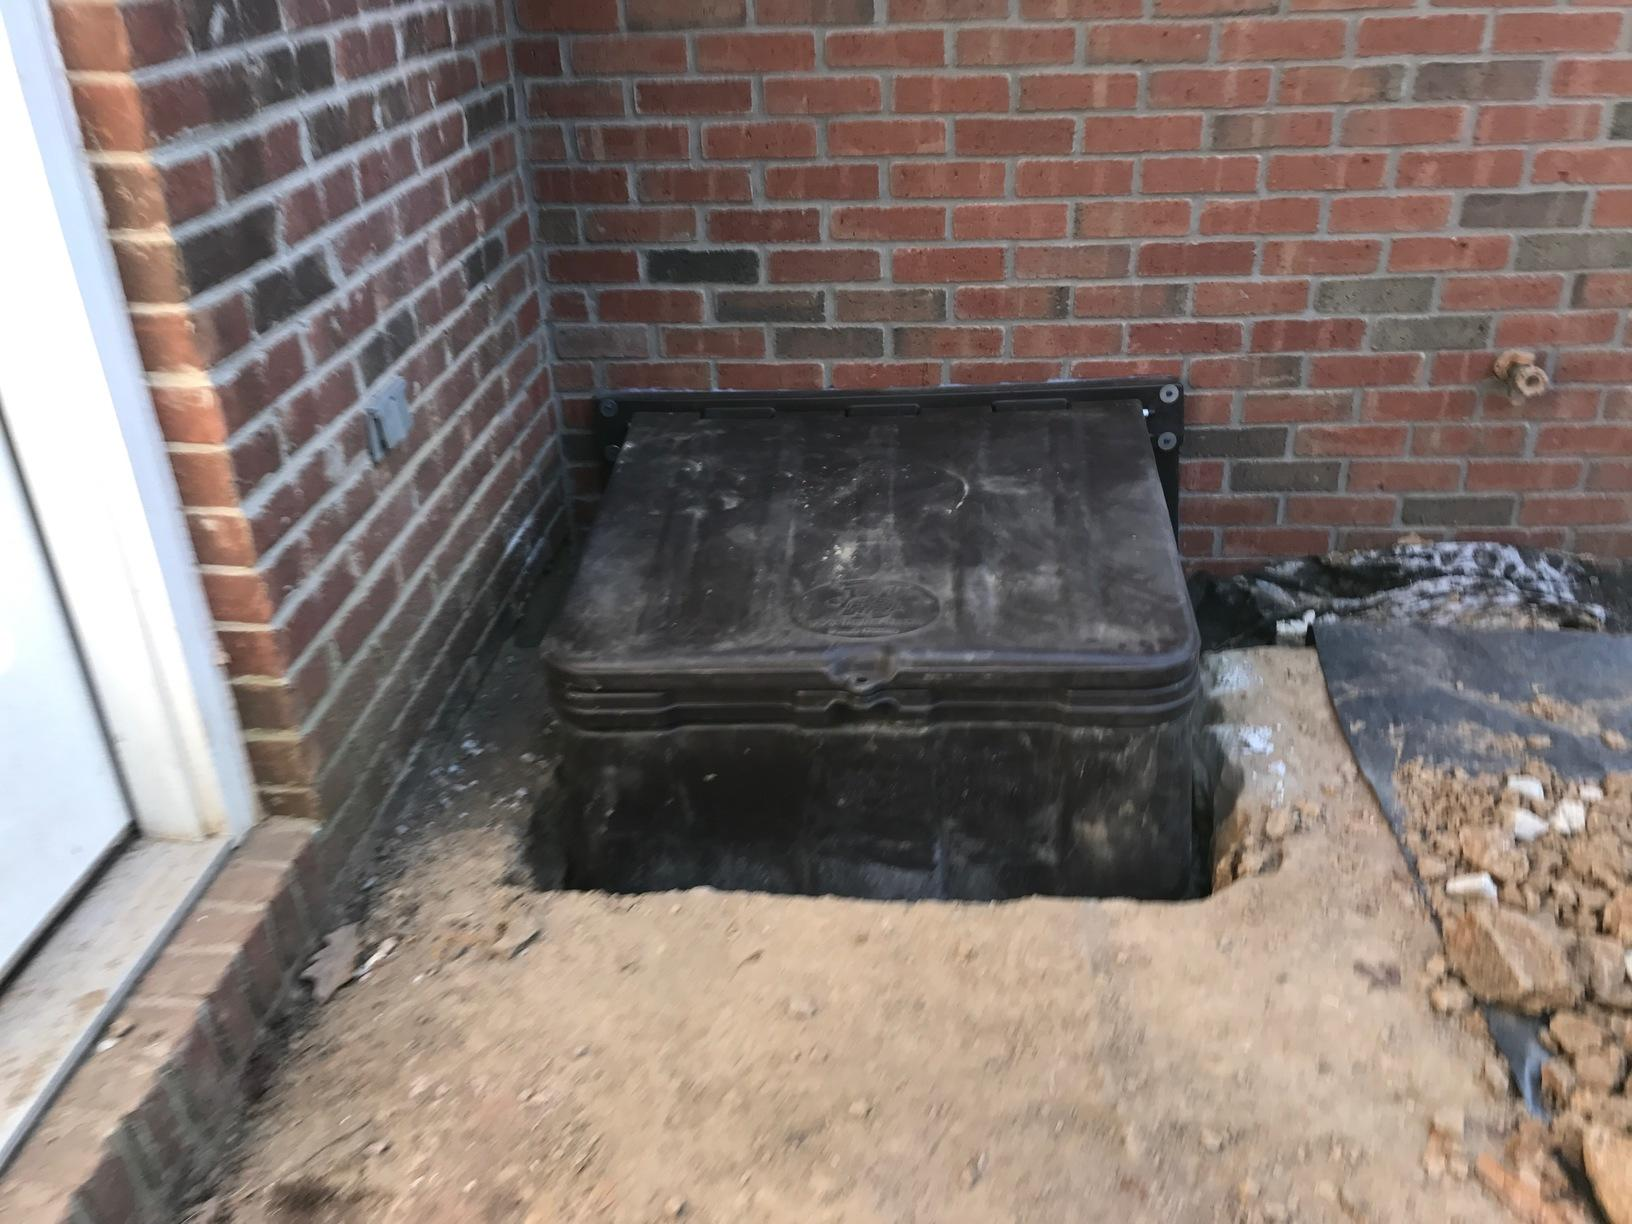 Crawl Space Access Well Installed in Celestine, IN - After Photo